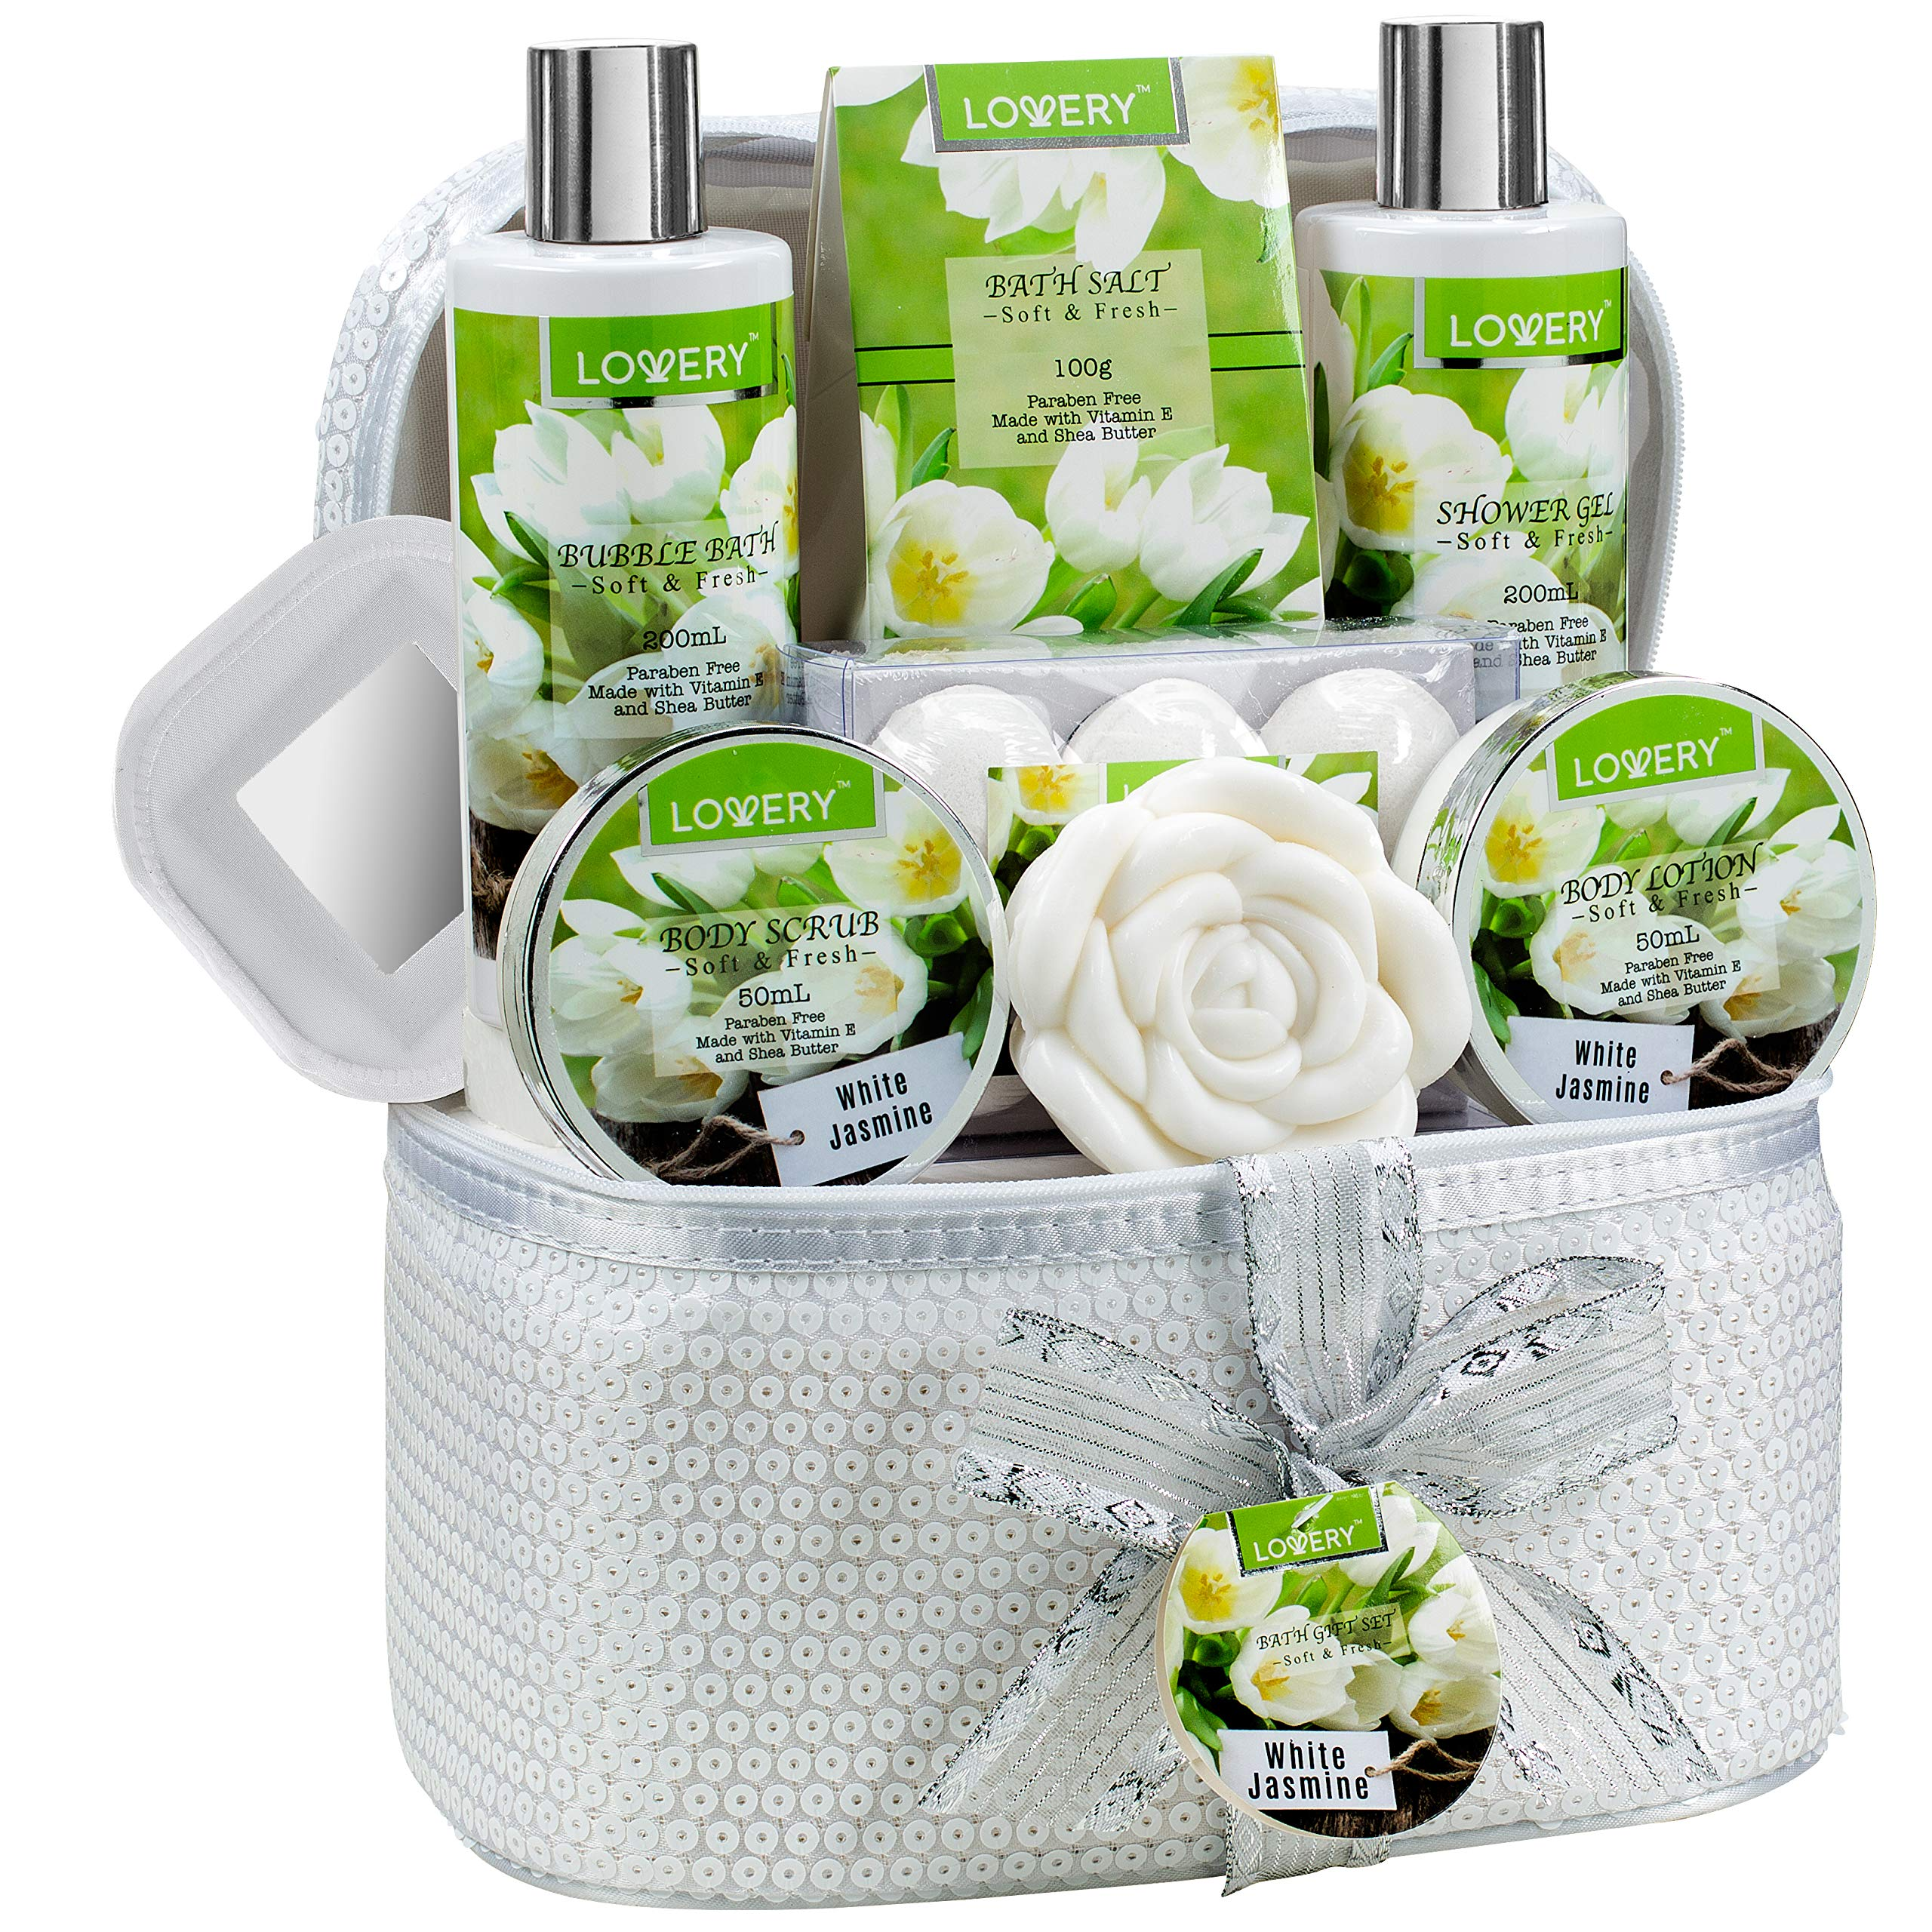 Bath and Body Gift Basket For Women & Men - 14 Piece Set in White Jasmine Scent - Home Spa Set with 6 Bath Bombs, Body Lotion, Rose Soaps, Hand Crafted White Sequined Cosmetics Bag and More